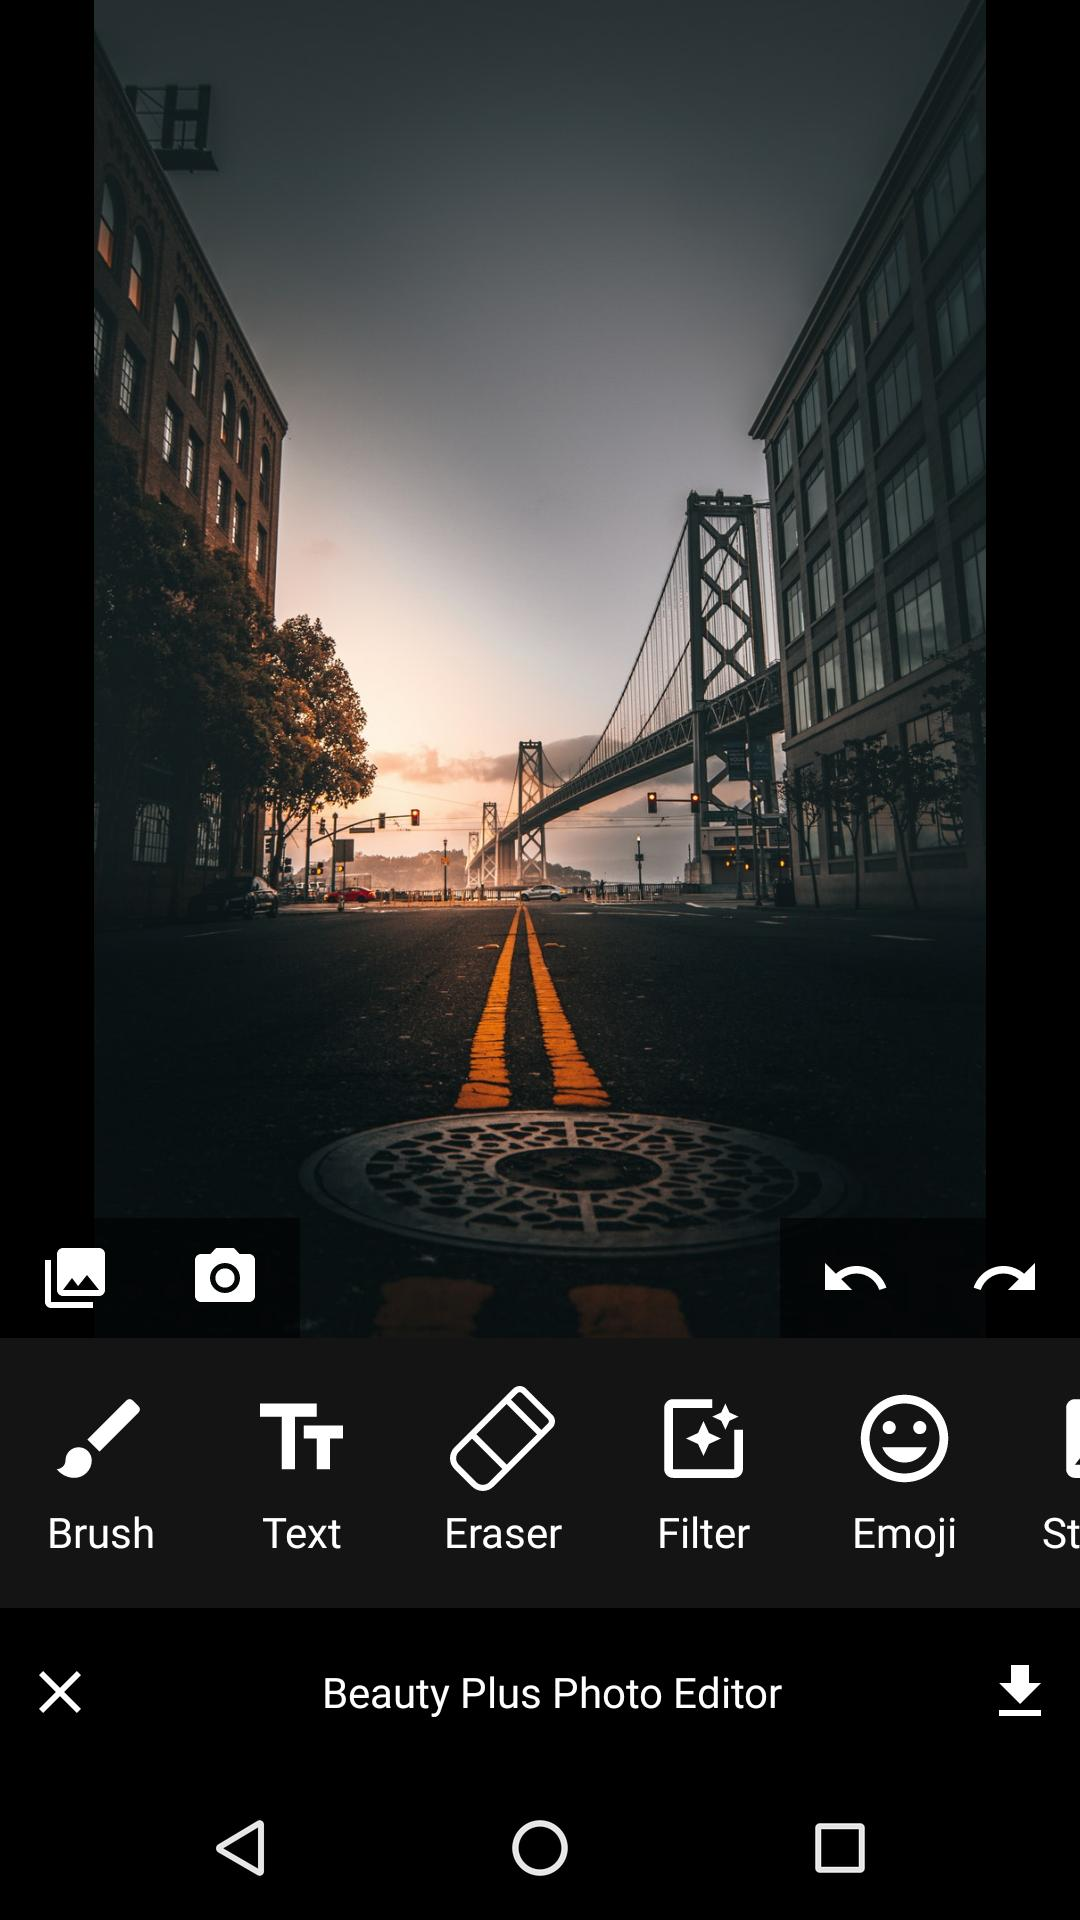 Beauty Plus Photo Editor for Android - APK Download